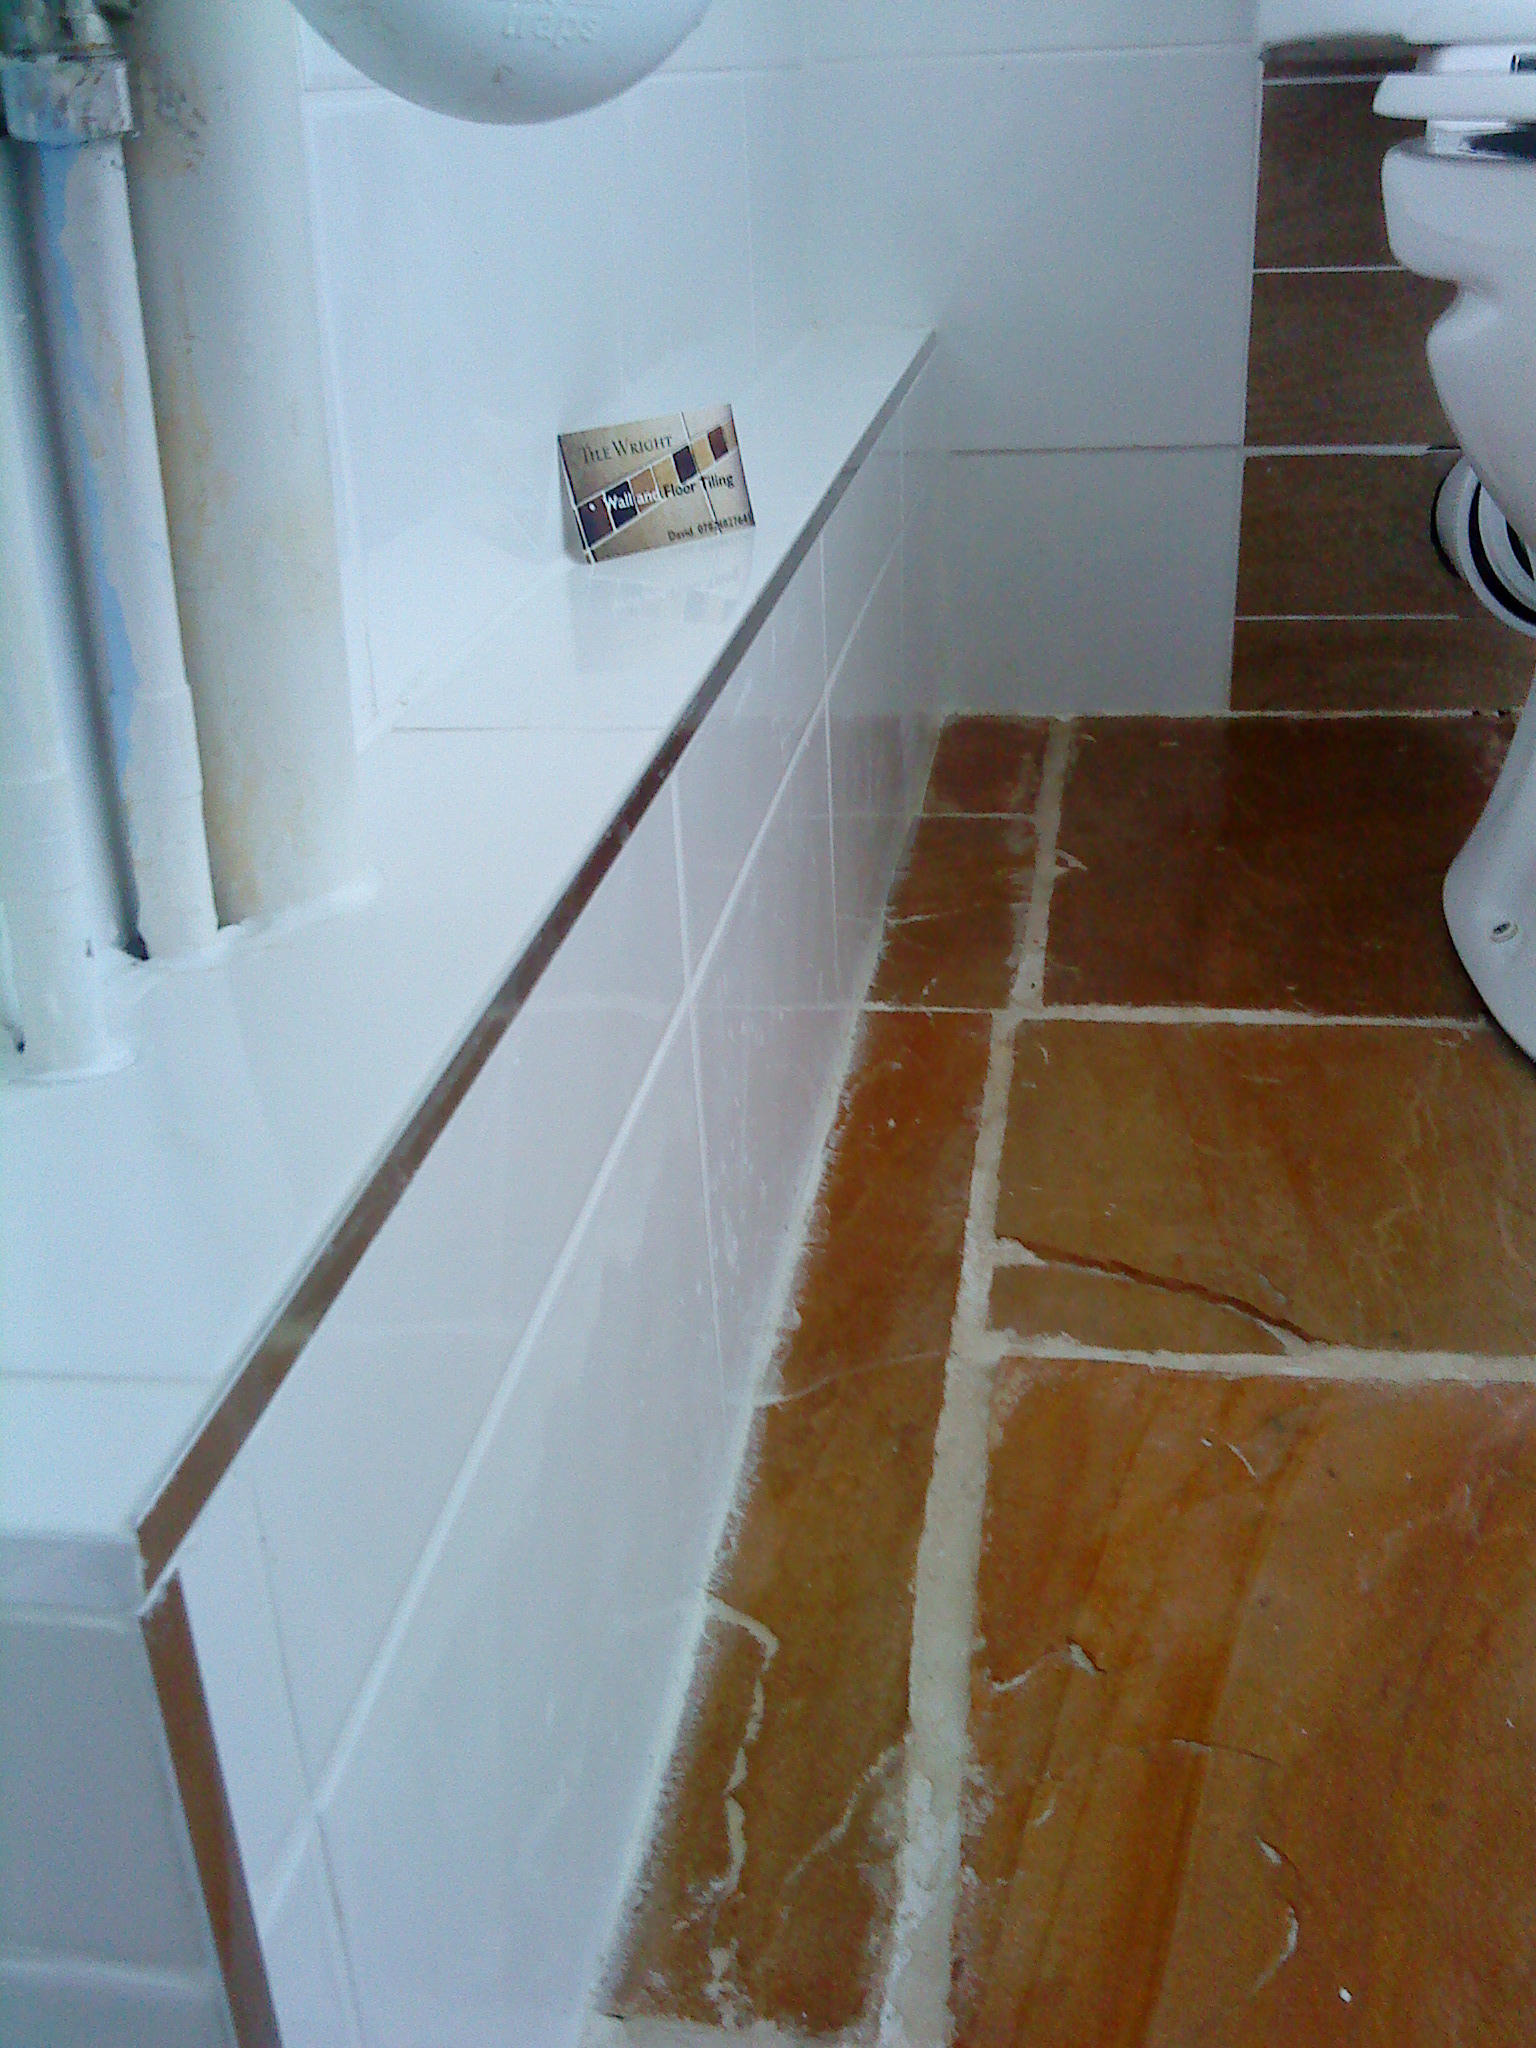 Wall and Floor Tiler looking for Work in Perth Please - British Expats